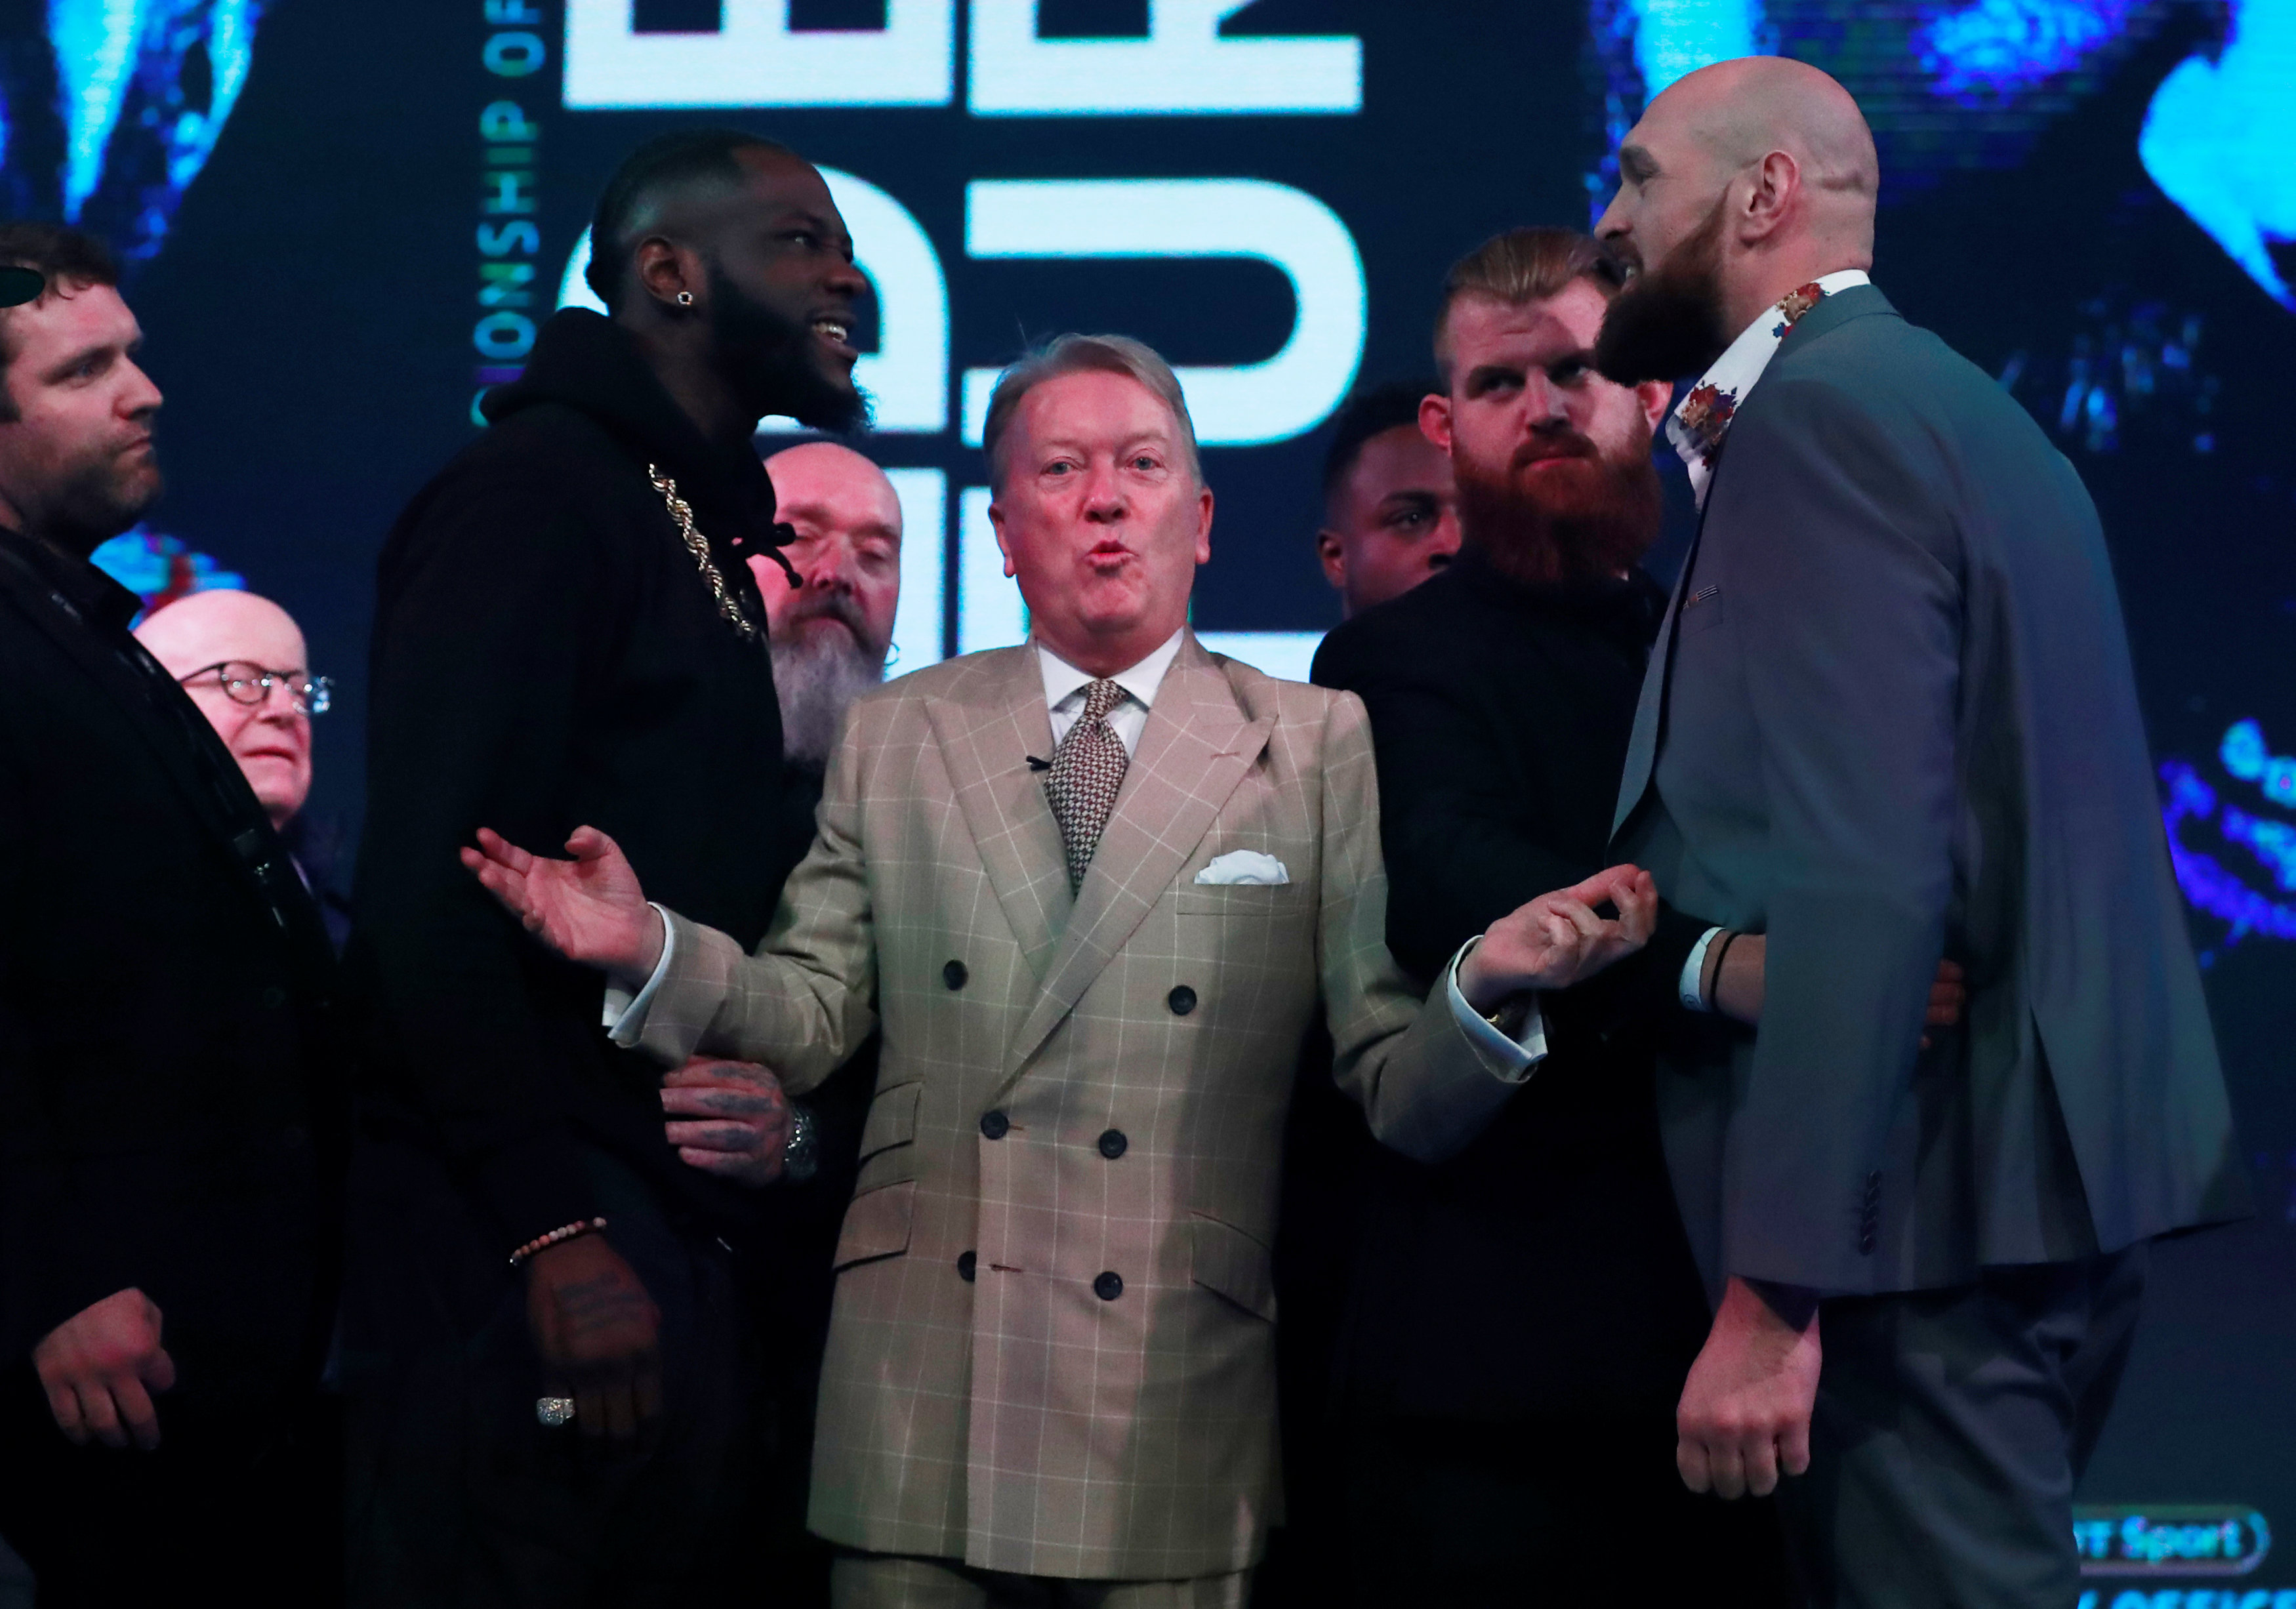 Boxing - Deontay Wilder & Tyson Fury Press Conference - BT Sport Studio, London, Britain - October 1, 2018    Promoter Frank Warren seperates Tyson Fury and Deontay Wilder during the press conference   Action Images via Reuters/Andrew Couldridge